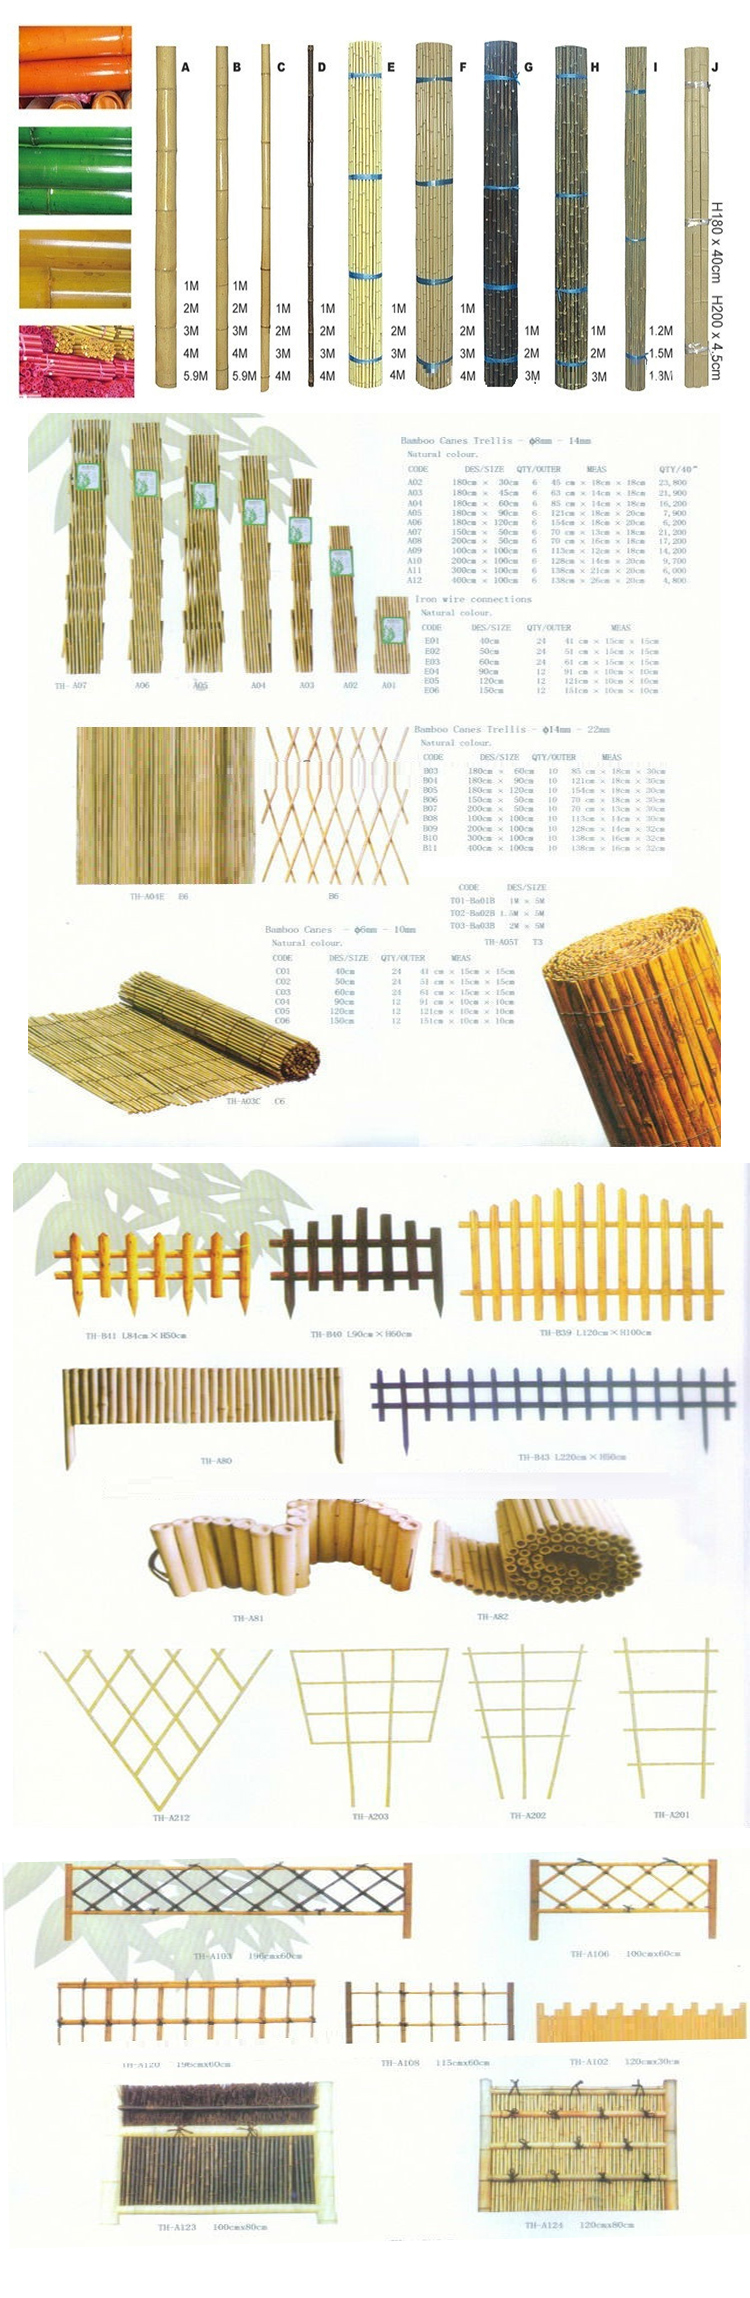 200*1200mm carbonized bamboo fence for livestock farm